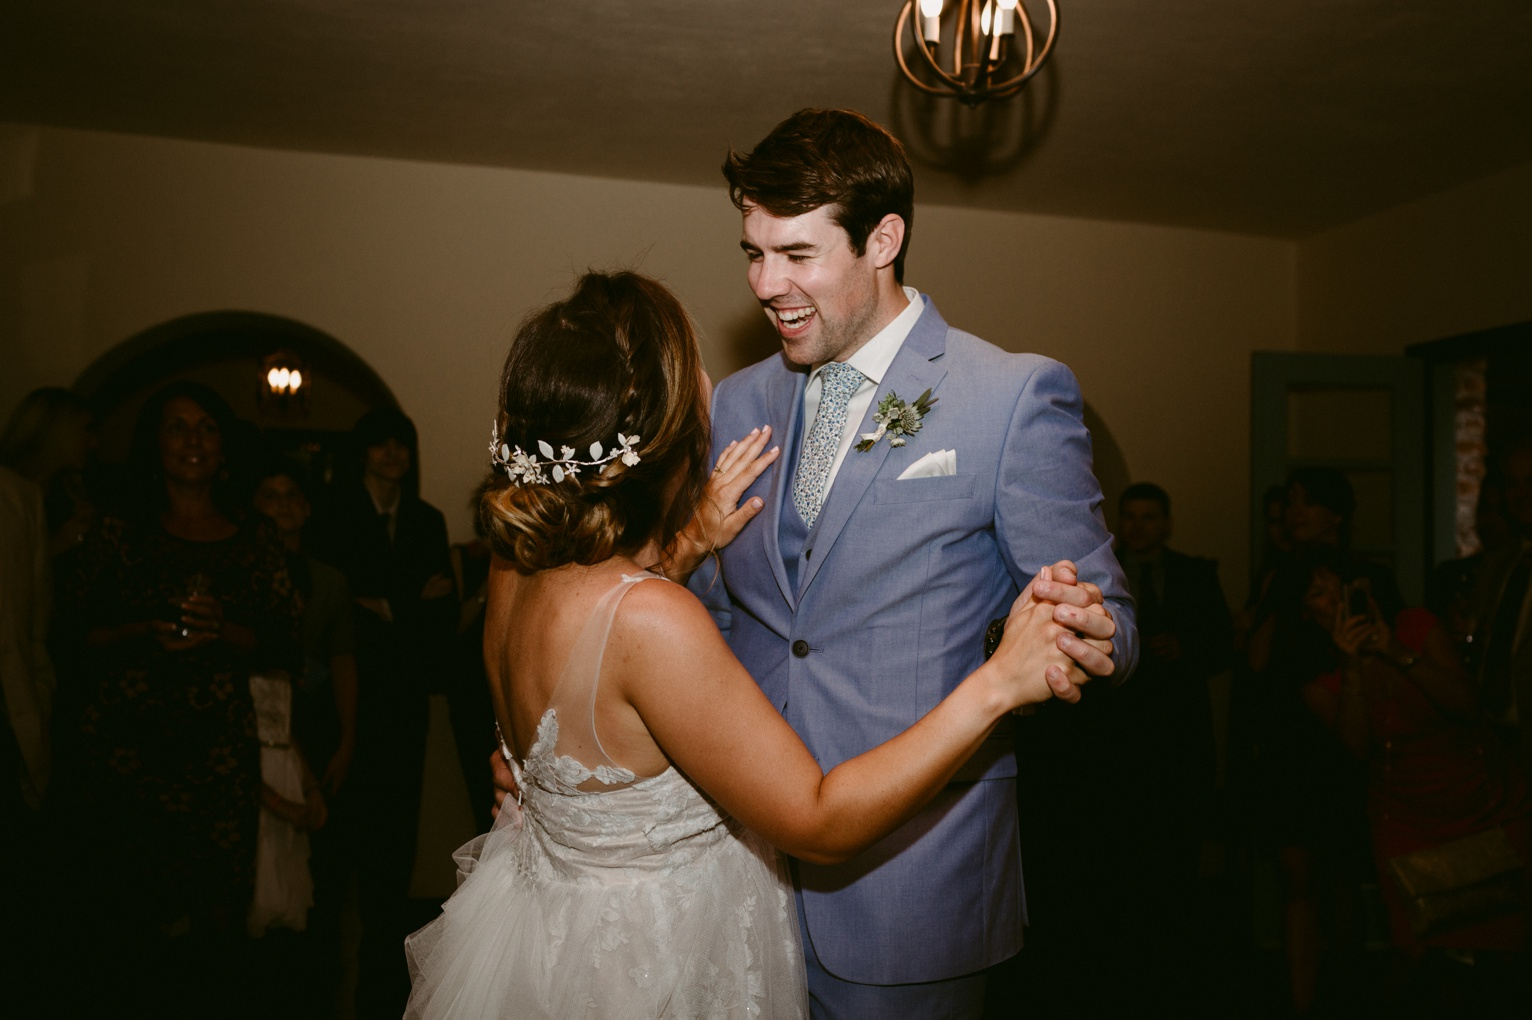 Dreamtownco.com_blog_Nick&Lindsay_Wedding_0130.jpg